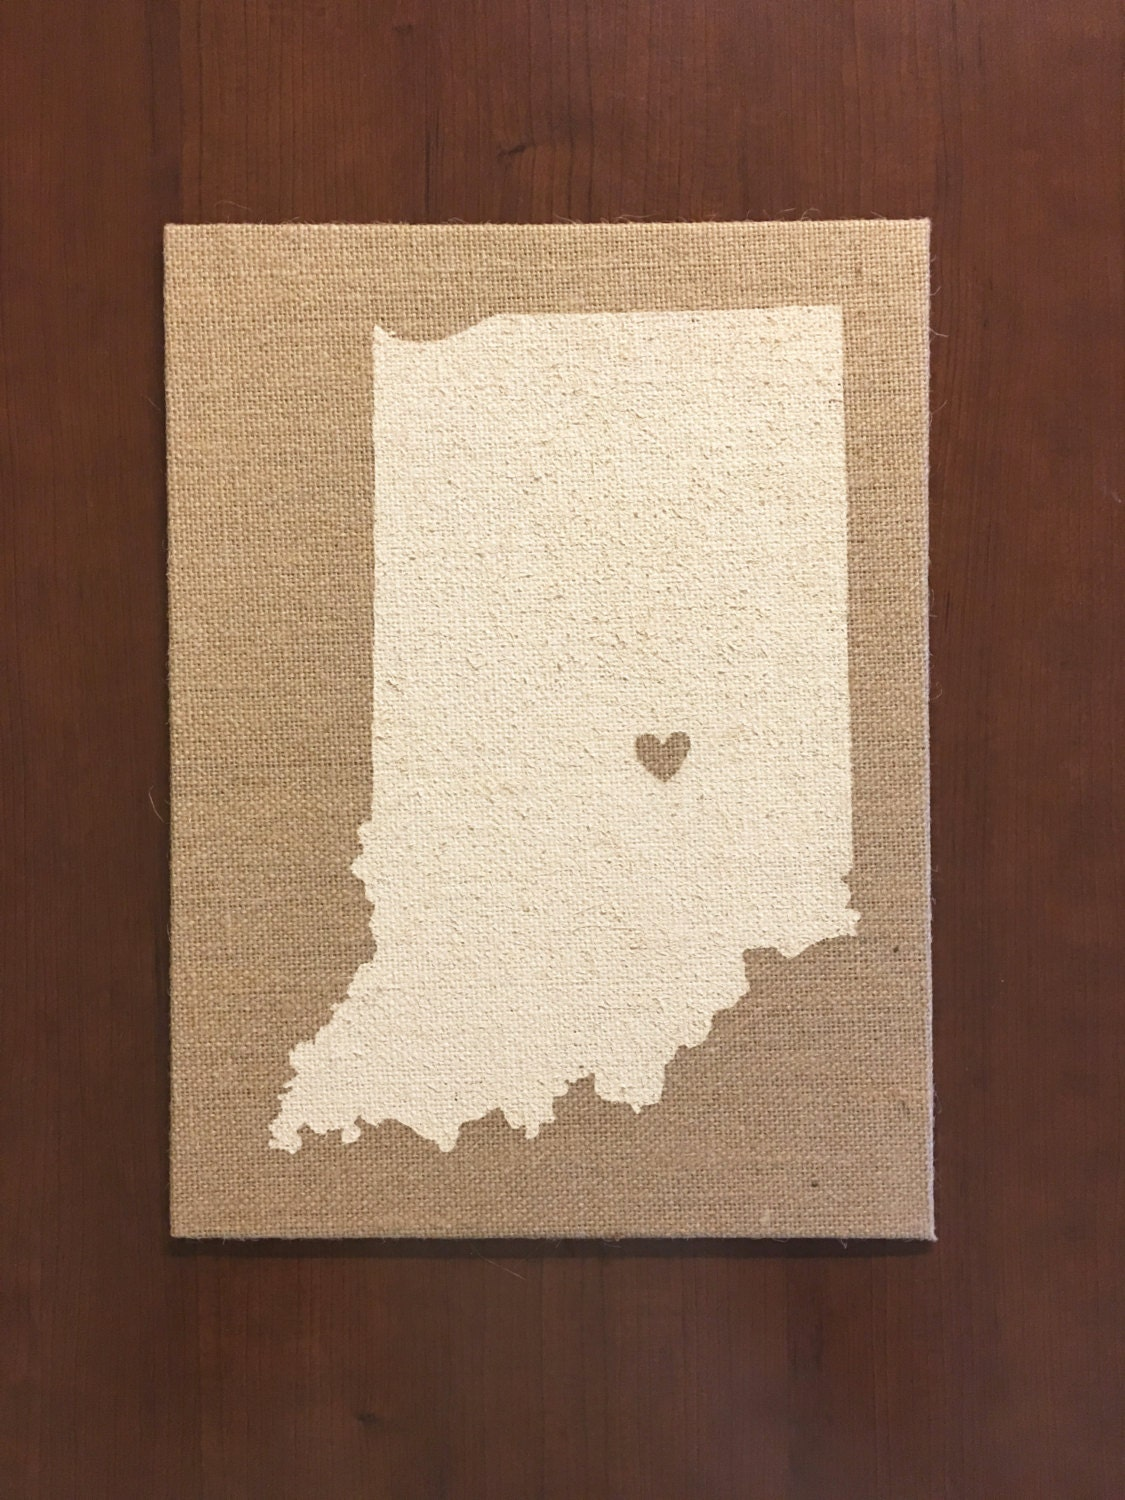 Your state and location home decor by kaysmithdesign on etsy for Home decor locations